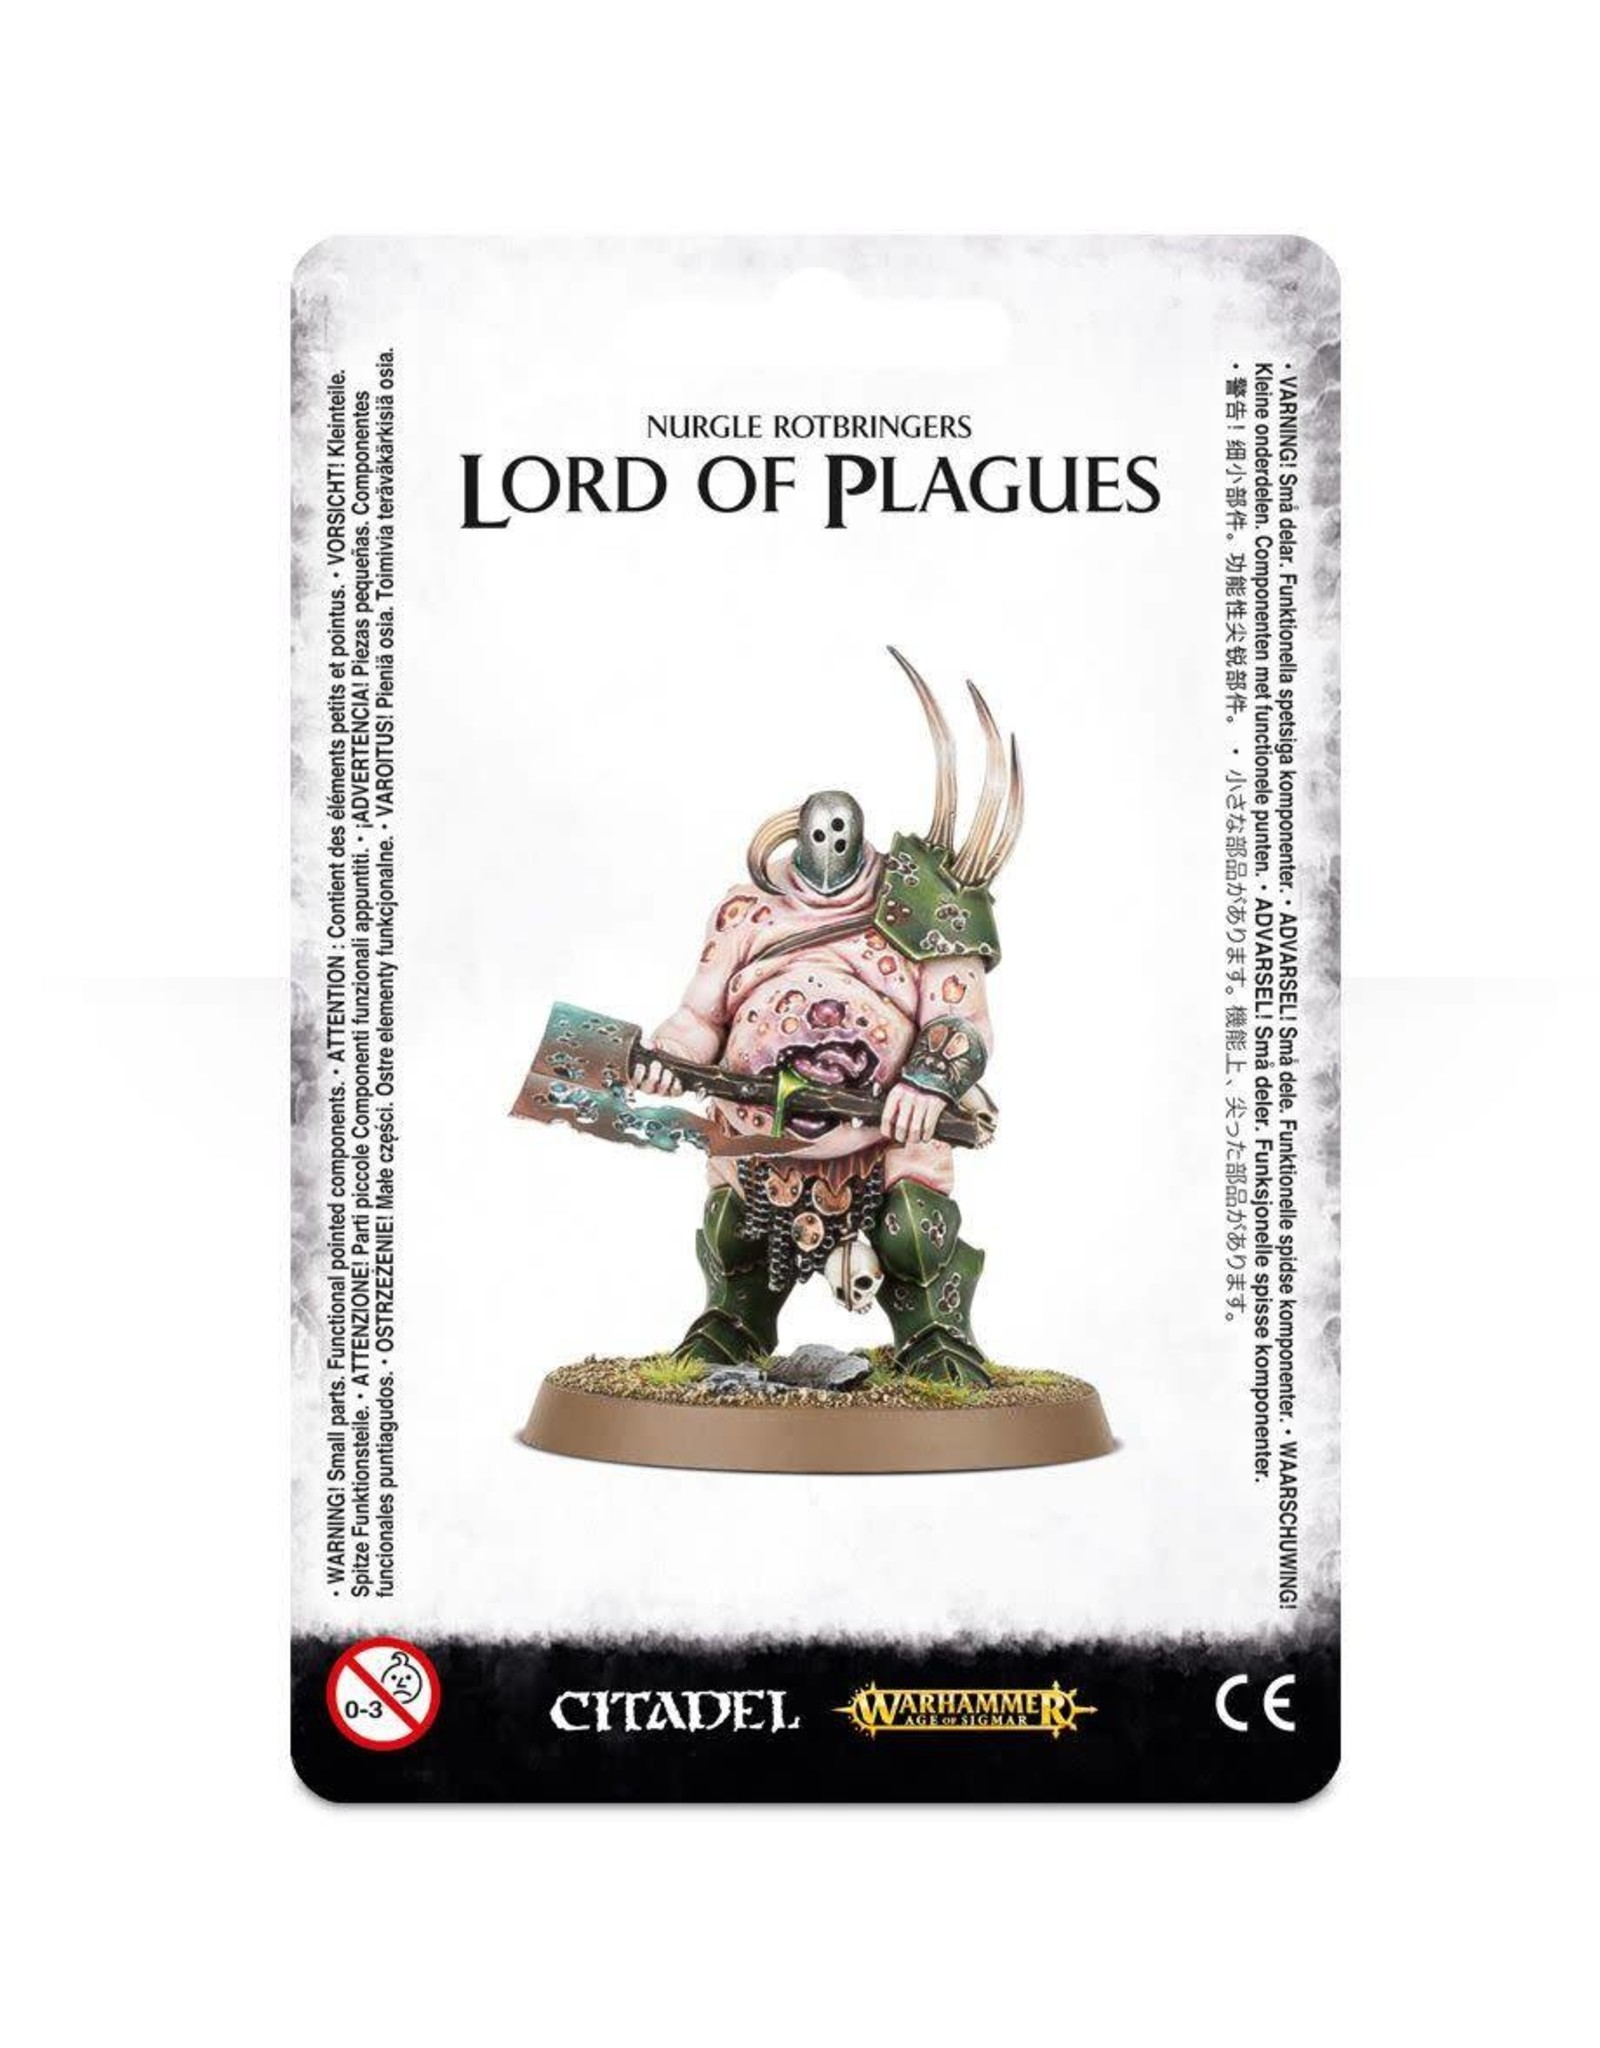 Age of Sigmar NURGLE ROTBRINGERS LORD OF PLAGUES